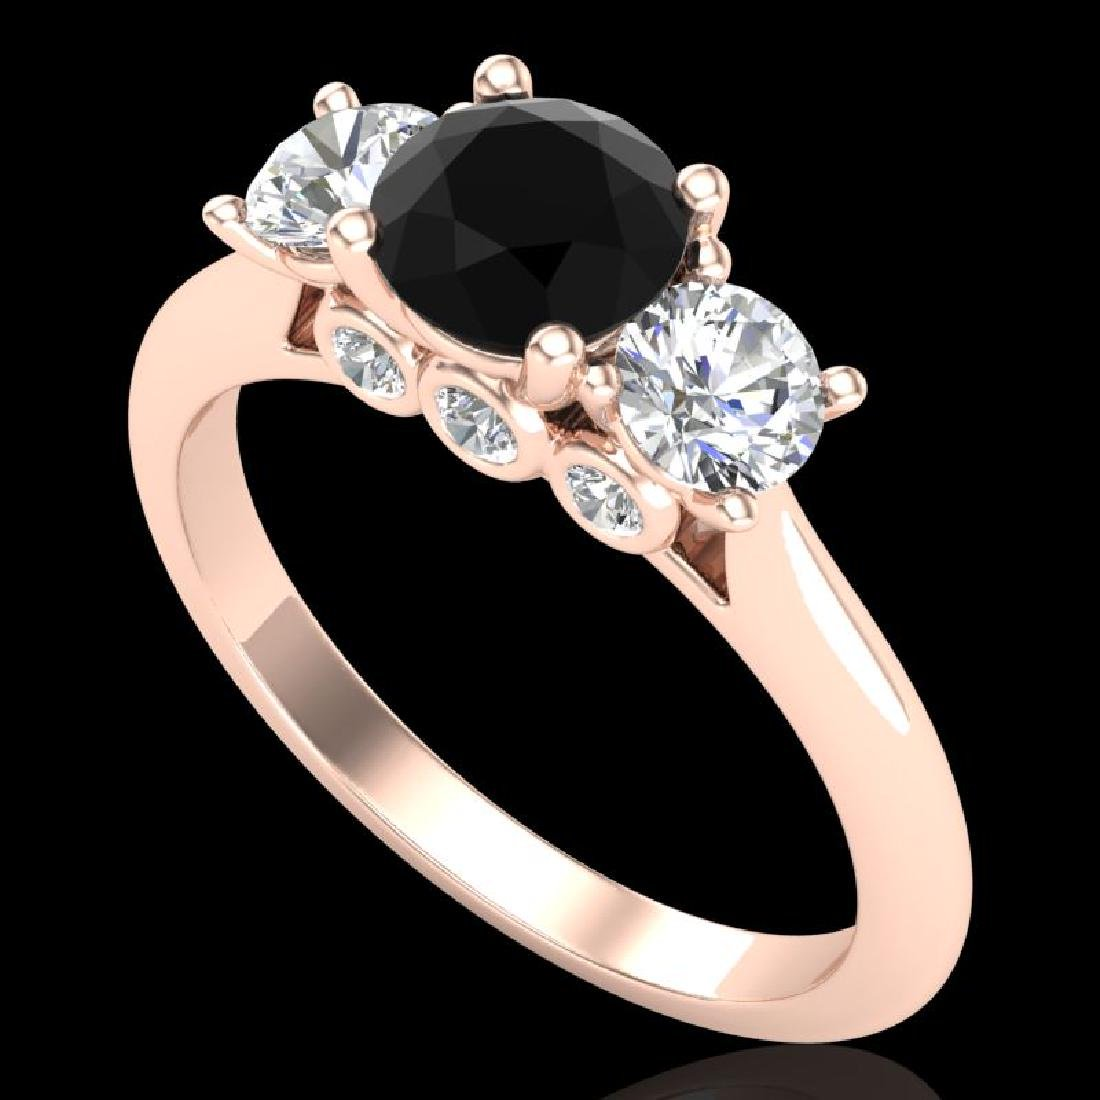 1.5 CTW Fancy Black Diamond Solitaire Art Deco 3 Stone